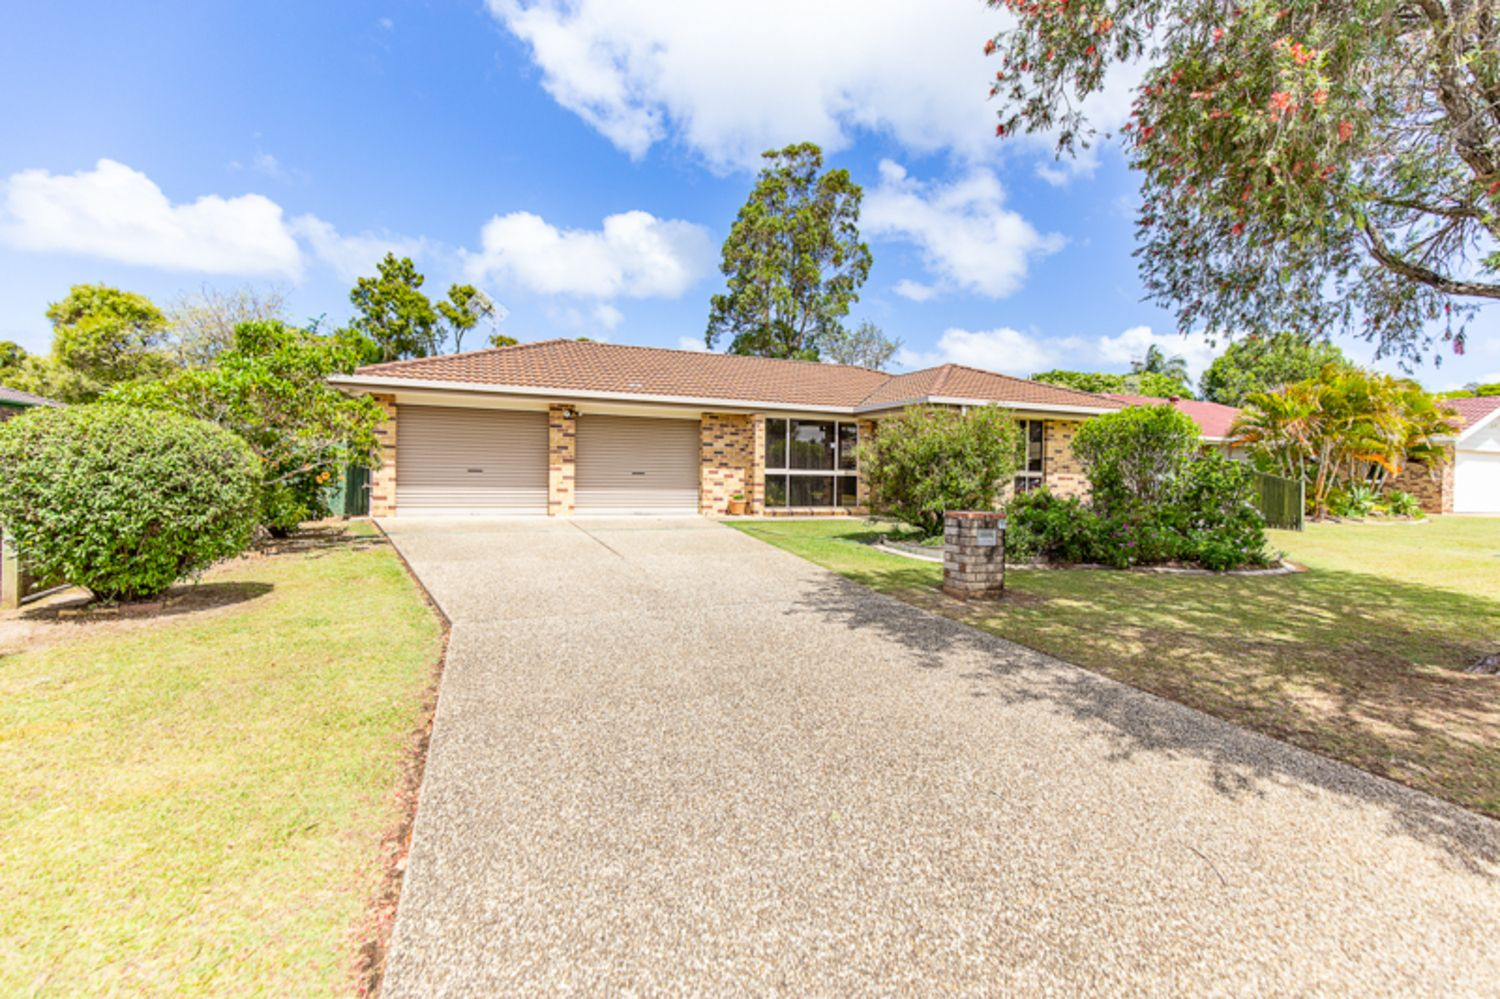 72 Honeymyrtle Drive, Banora Point NSW 2486, Image 0